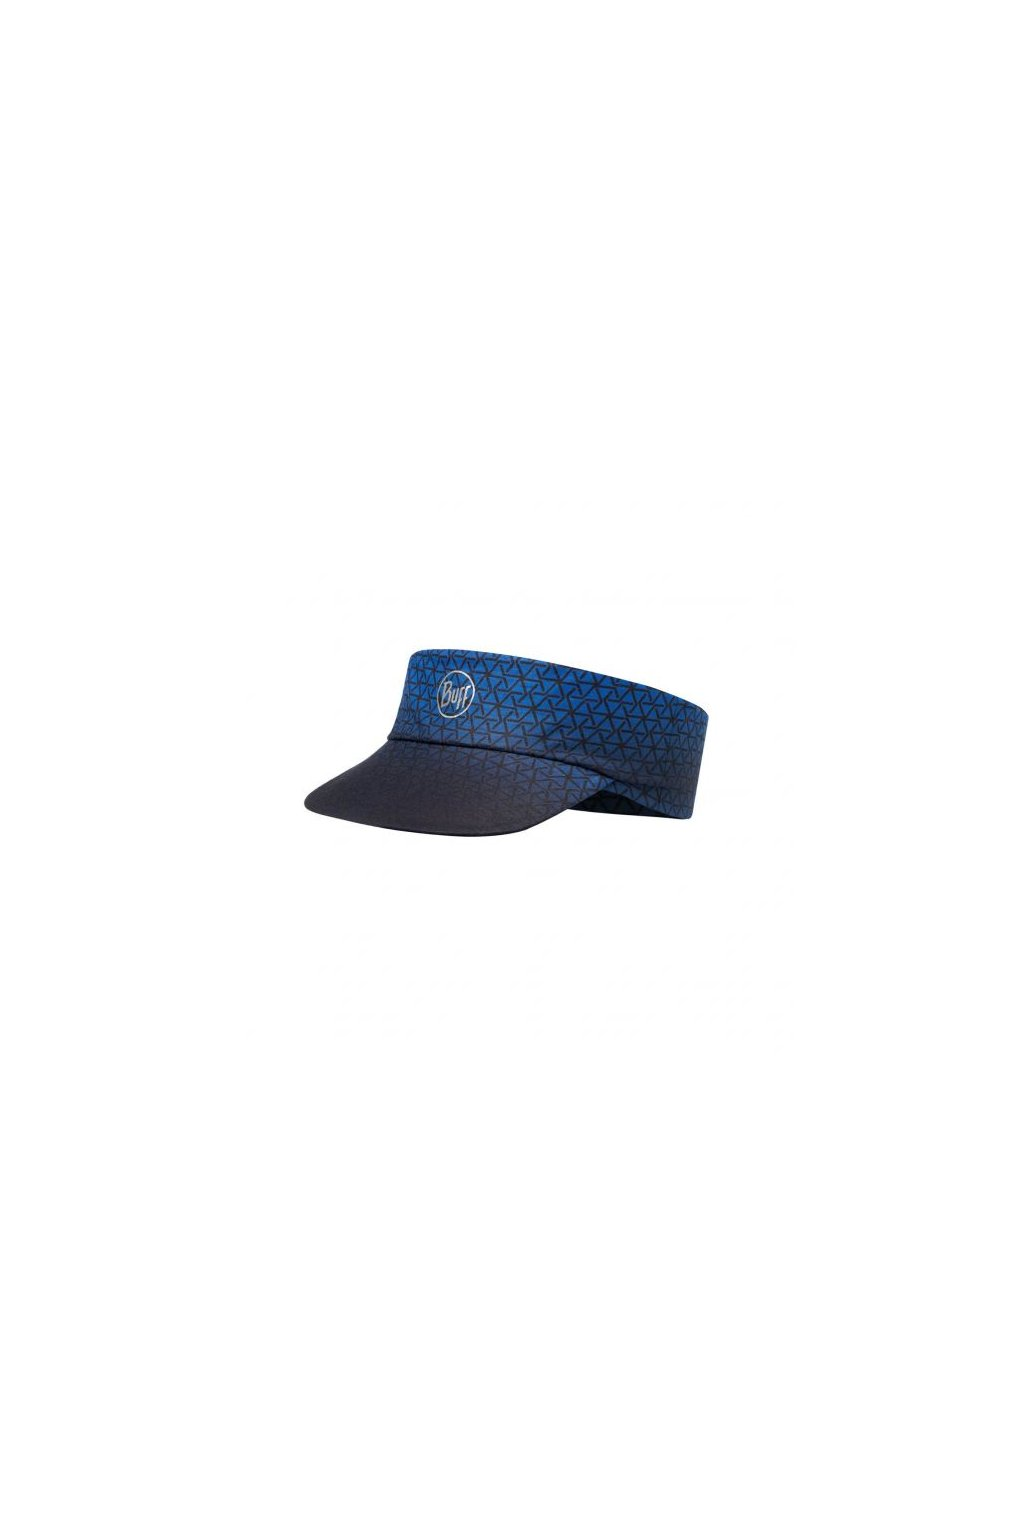 BUFF KŠILT PACK RUN VISOR R-EQUILATERAL CAPE BLUE